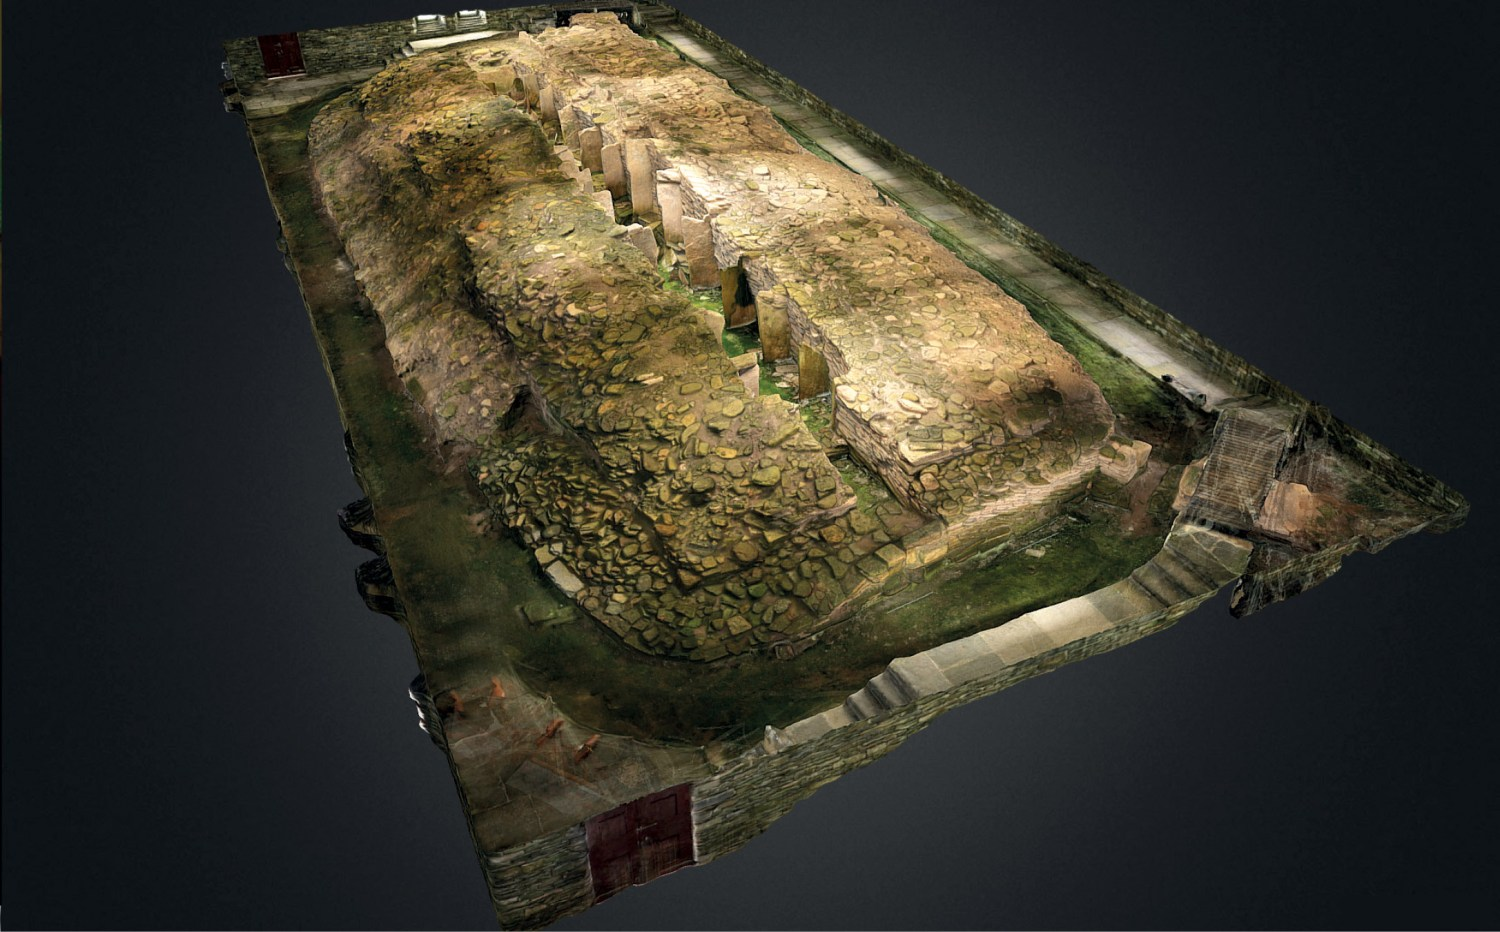 below This digital model shows the pairs of upright slabs dividing the long internal chamber of Midhowe stalled cairn but also illustrates the difficulties of creating such models: skylights in the modern metal hangar covering the tomb have given its virtual outer surface a striped appearance.